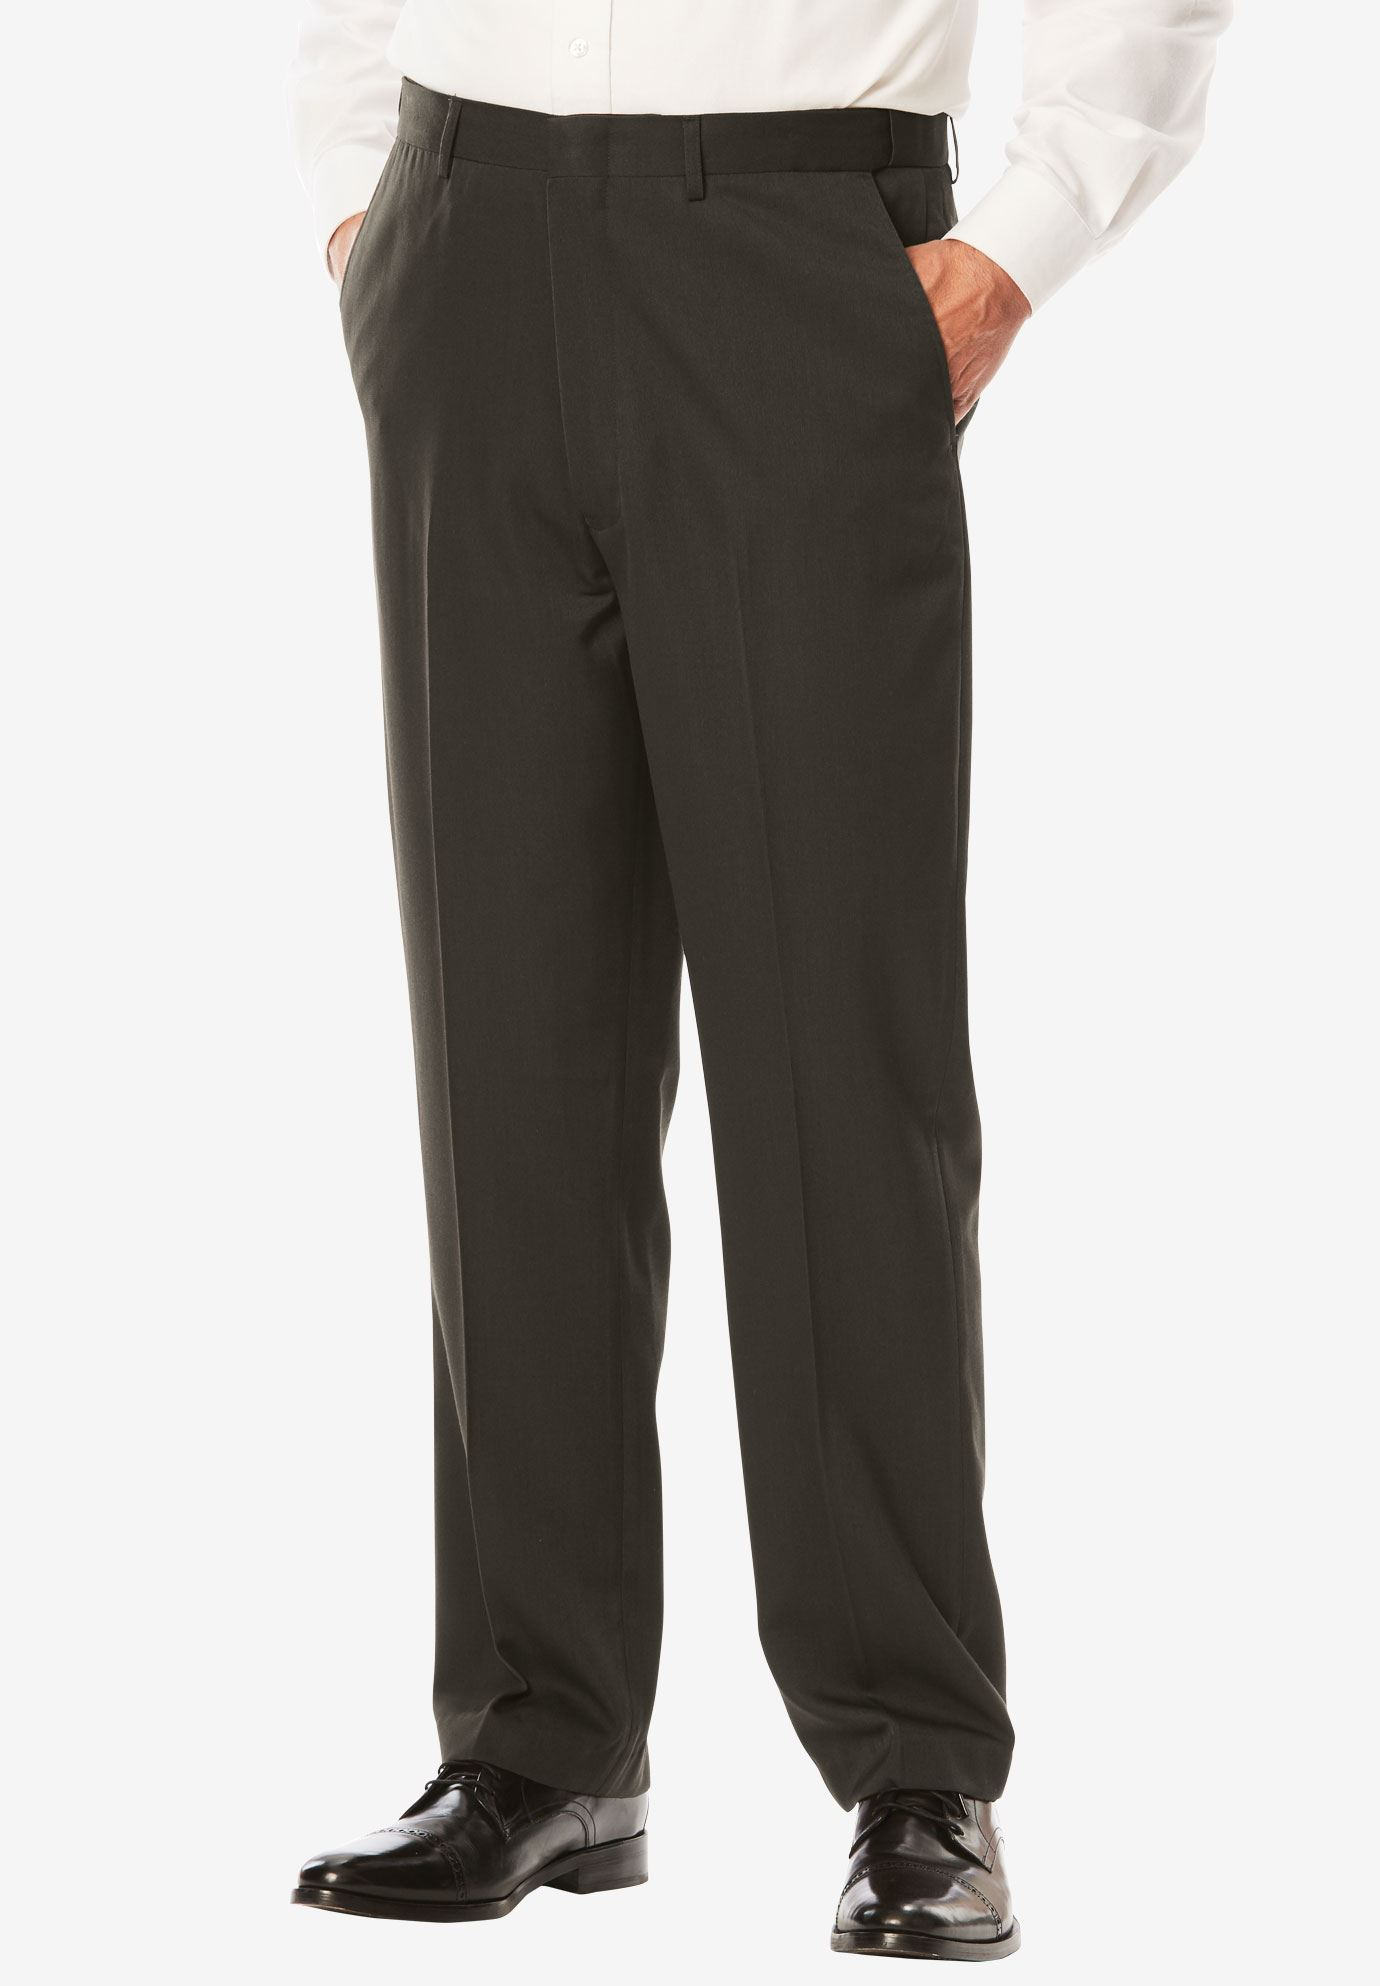 No Hassle® Modern Fit Expandable Waist Plain Front Dress Pants,